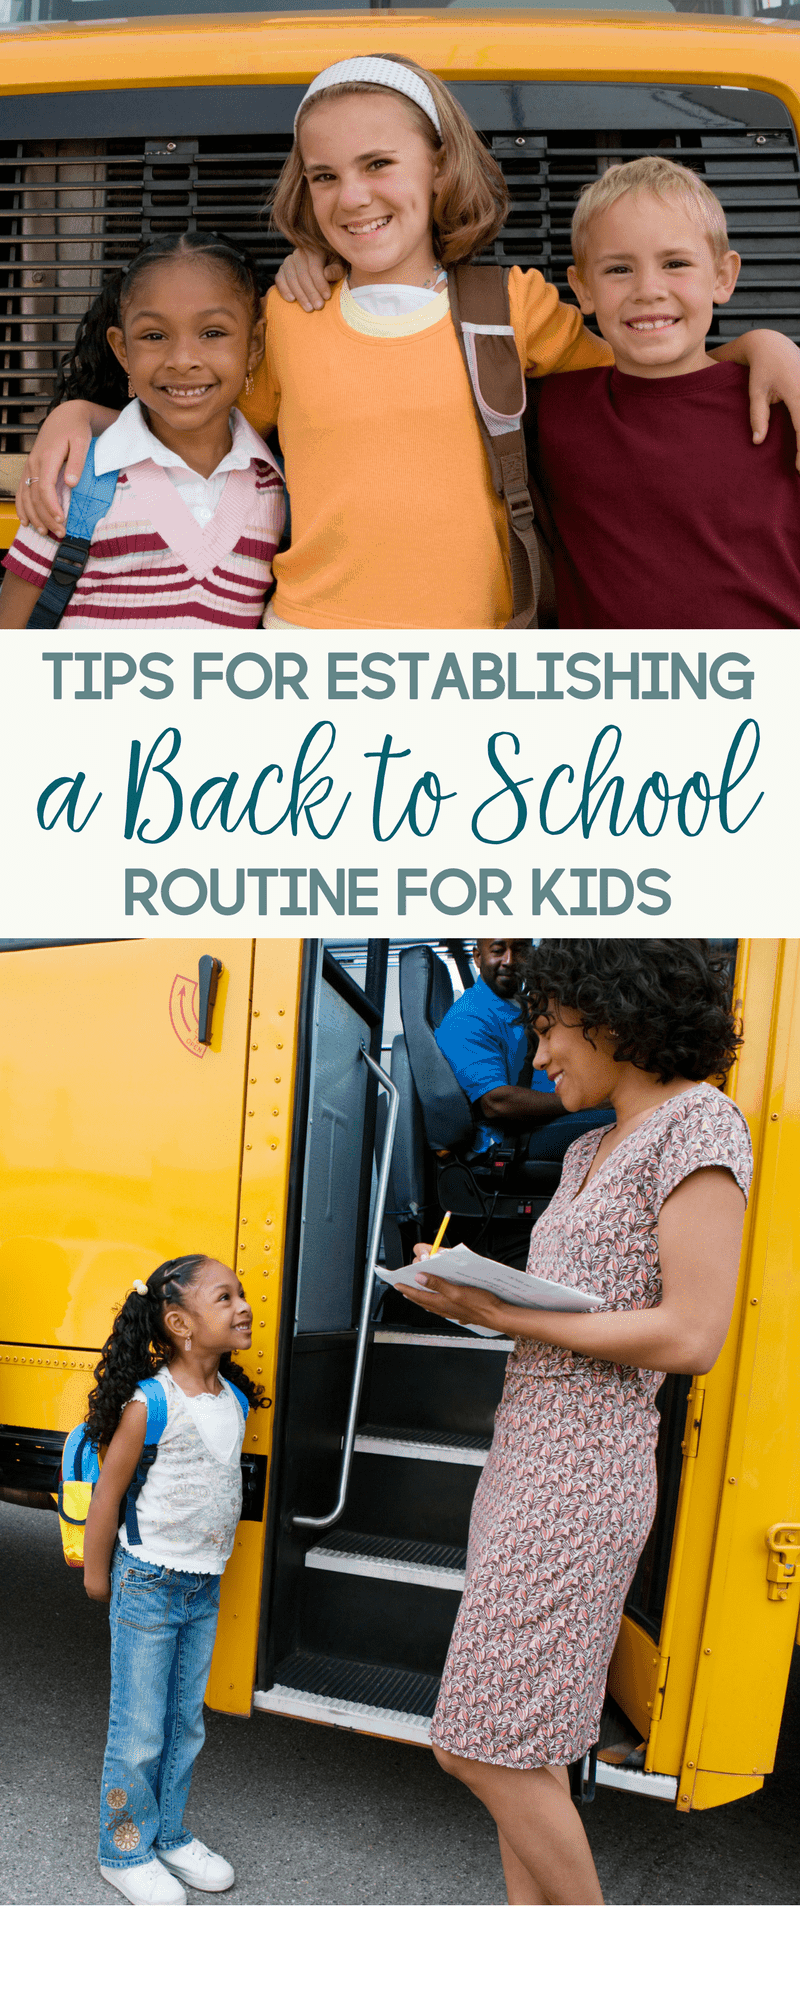 With some schools already in session and others going back soon, here are a few tips for establishing a back to school routine.